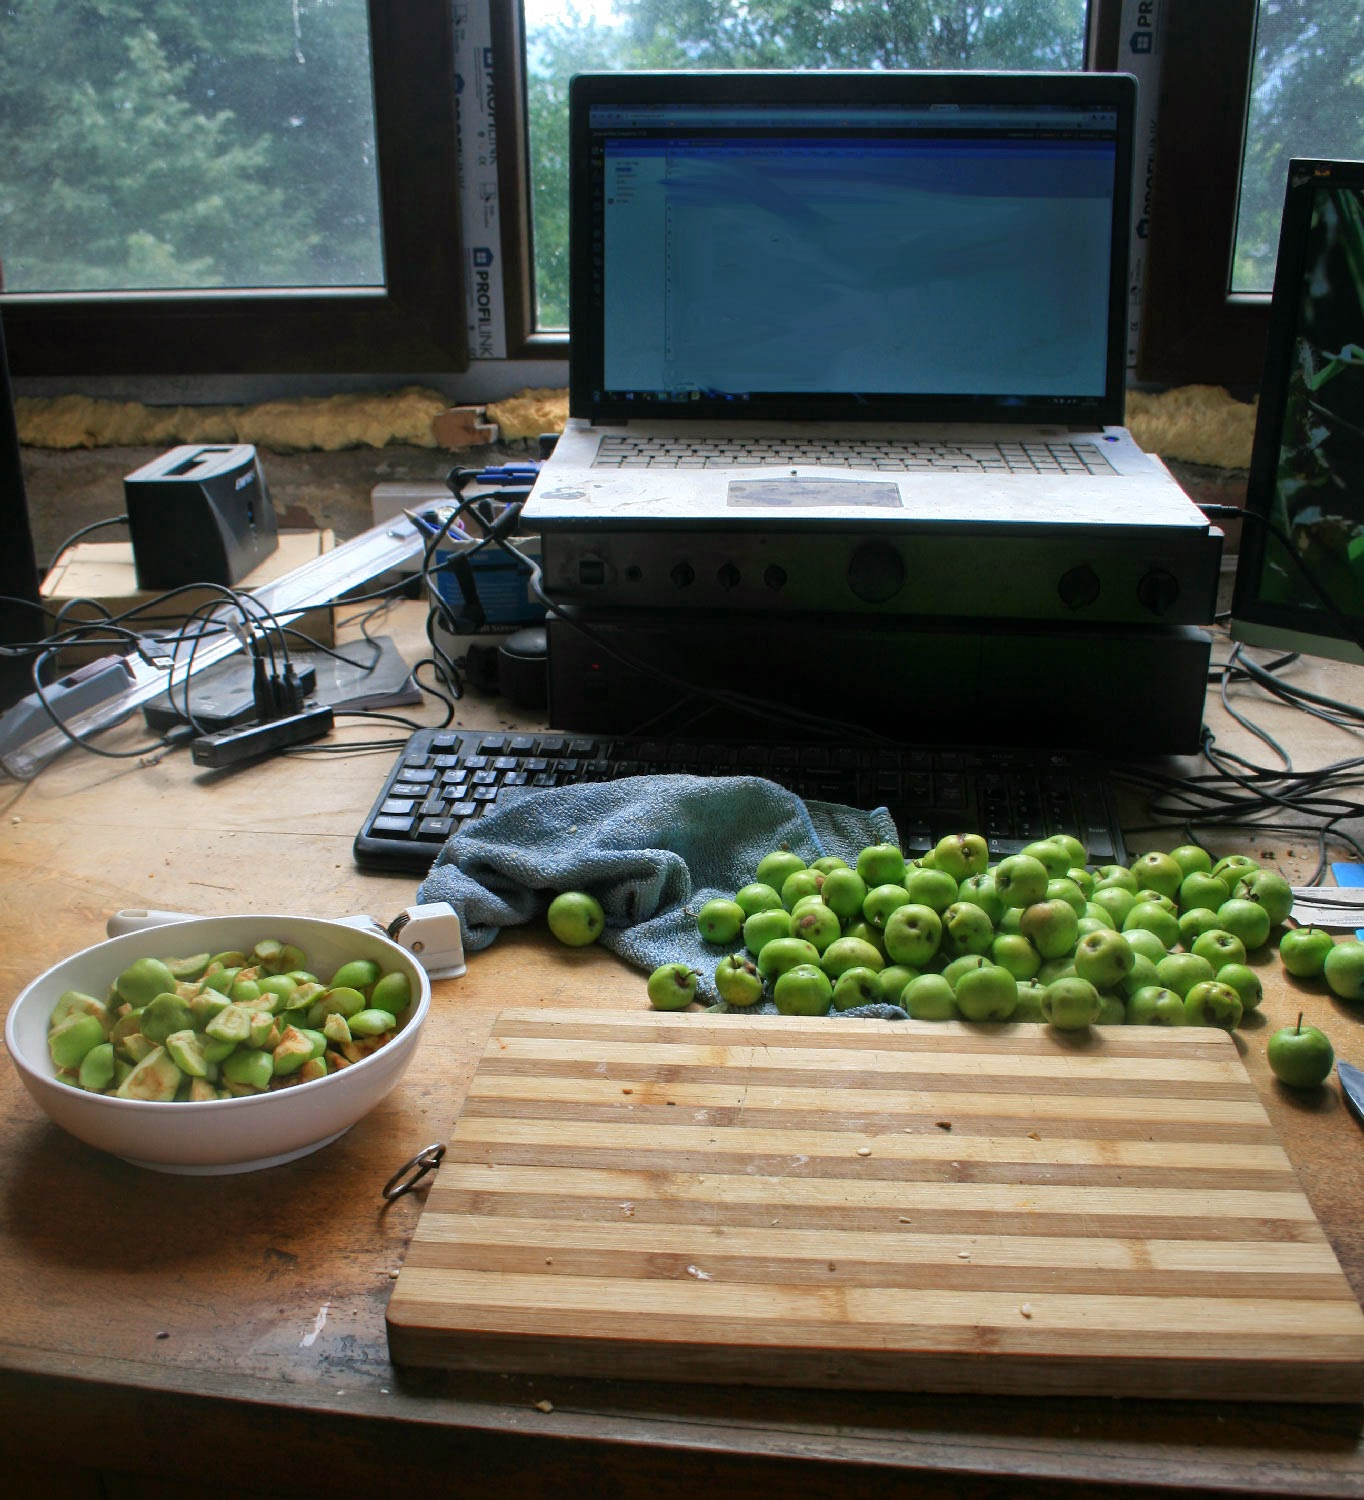 Chopping apples, loads still to do